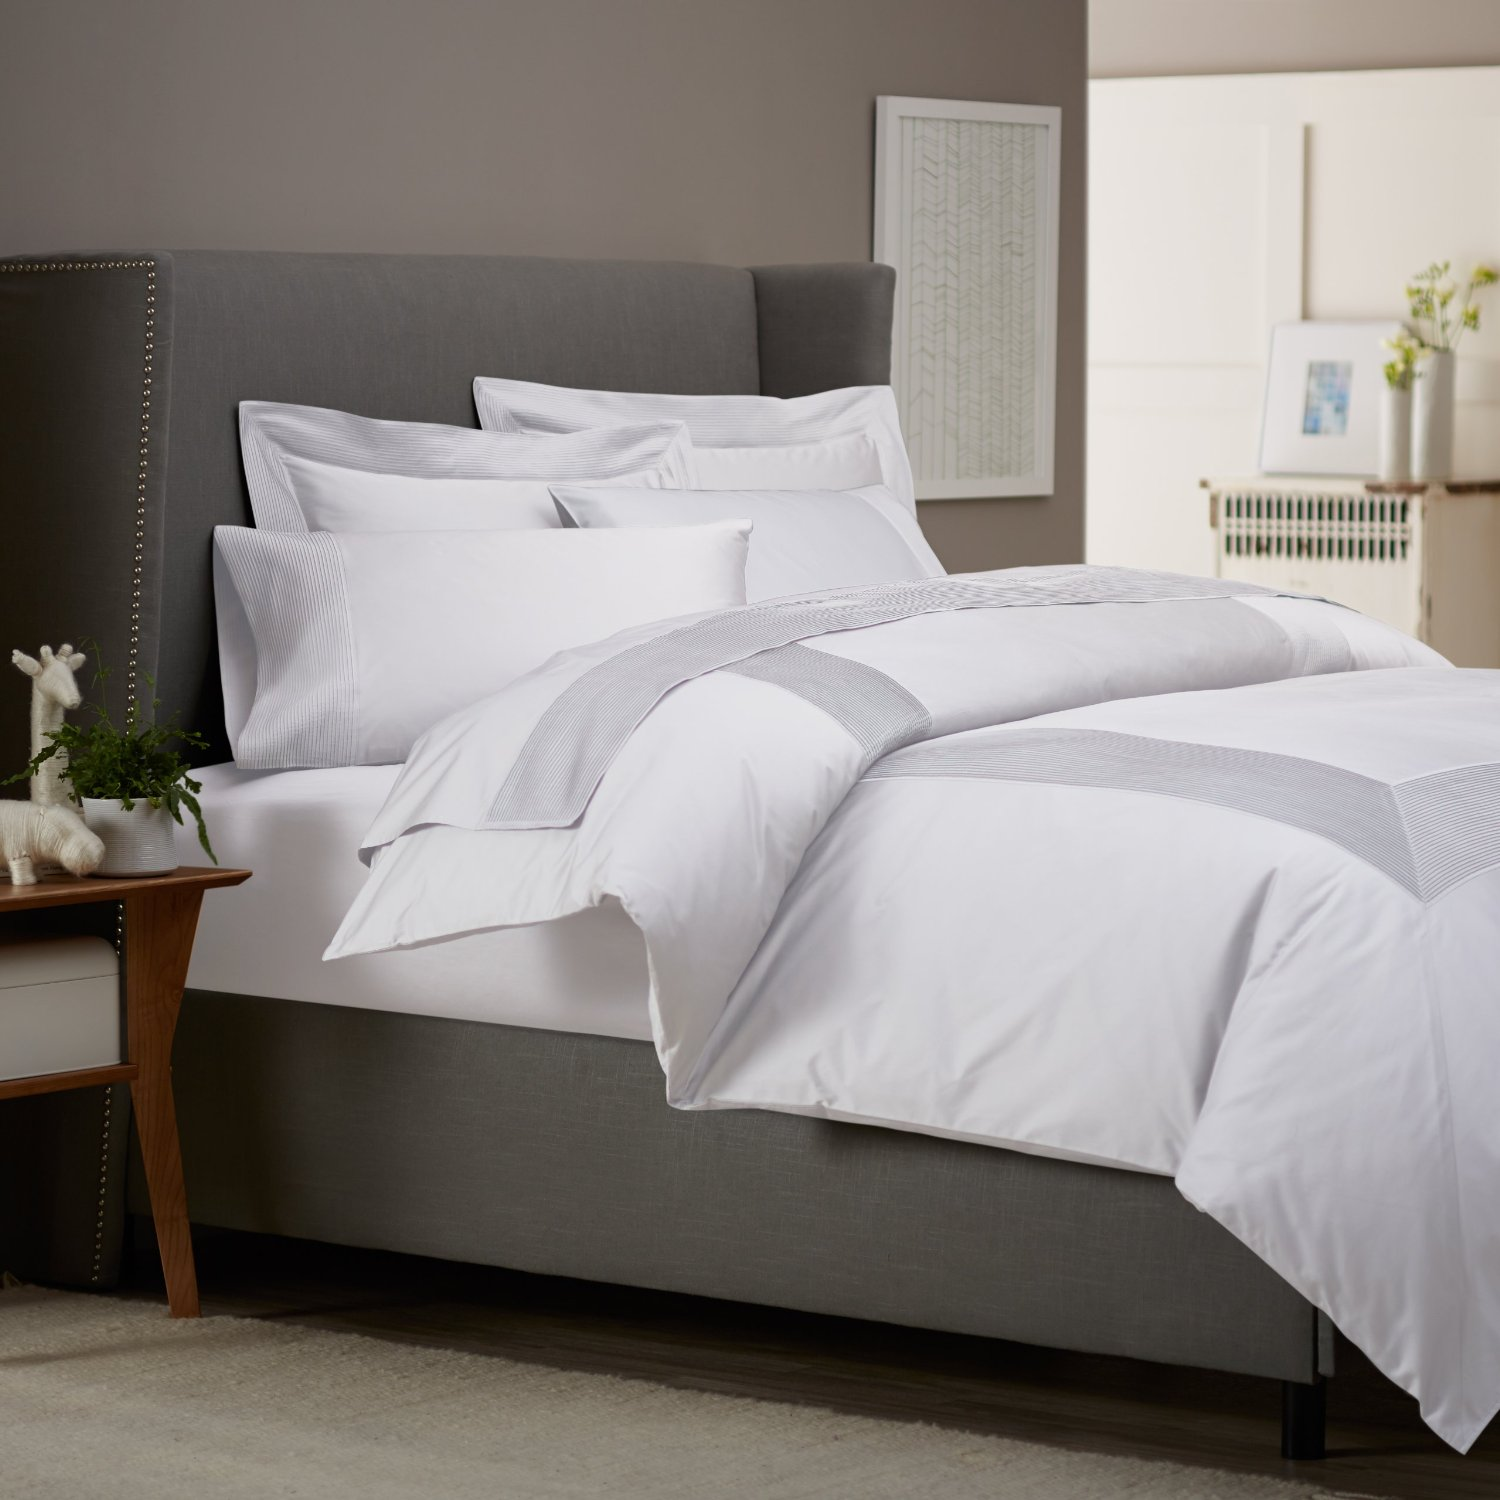 Contemporary King Bedroom Sets Get Alluring Visage By Displaying A White Comforter Sets